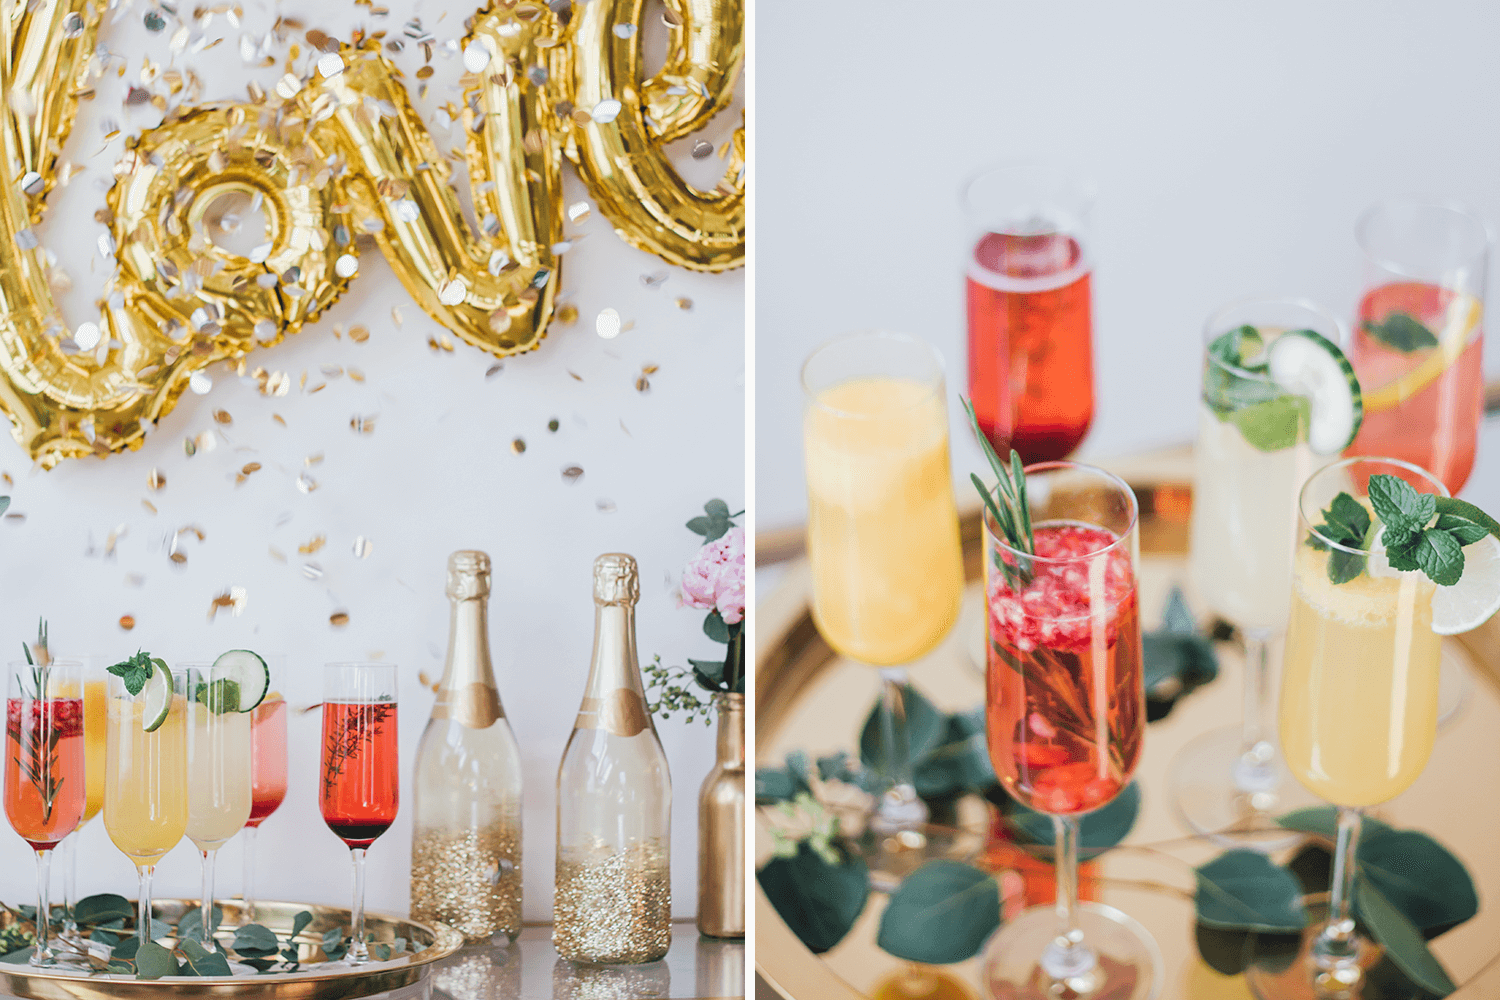 Pimp your Prosecco, Maid of Honor, Trauzeugin, DIY, JGA, Bridal Party, Brautparty